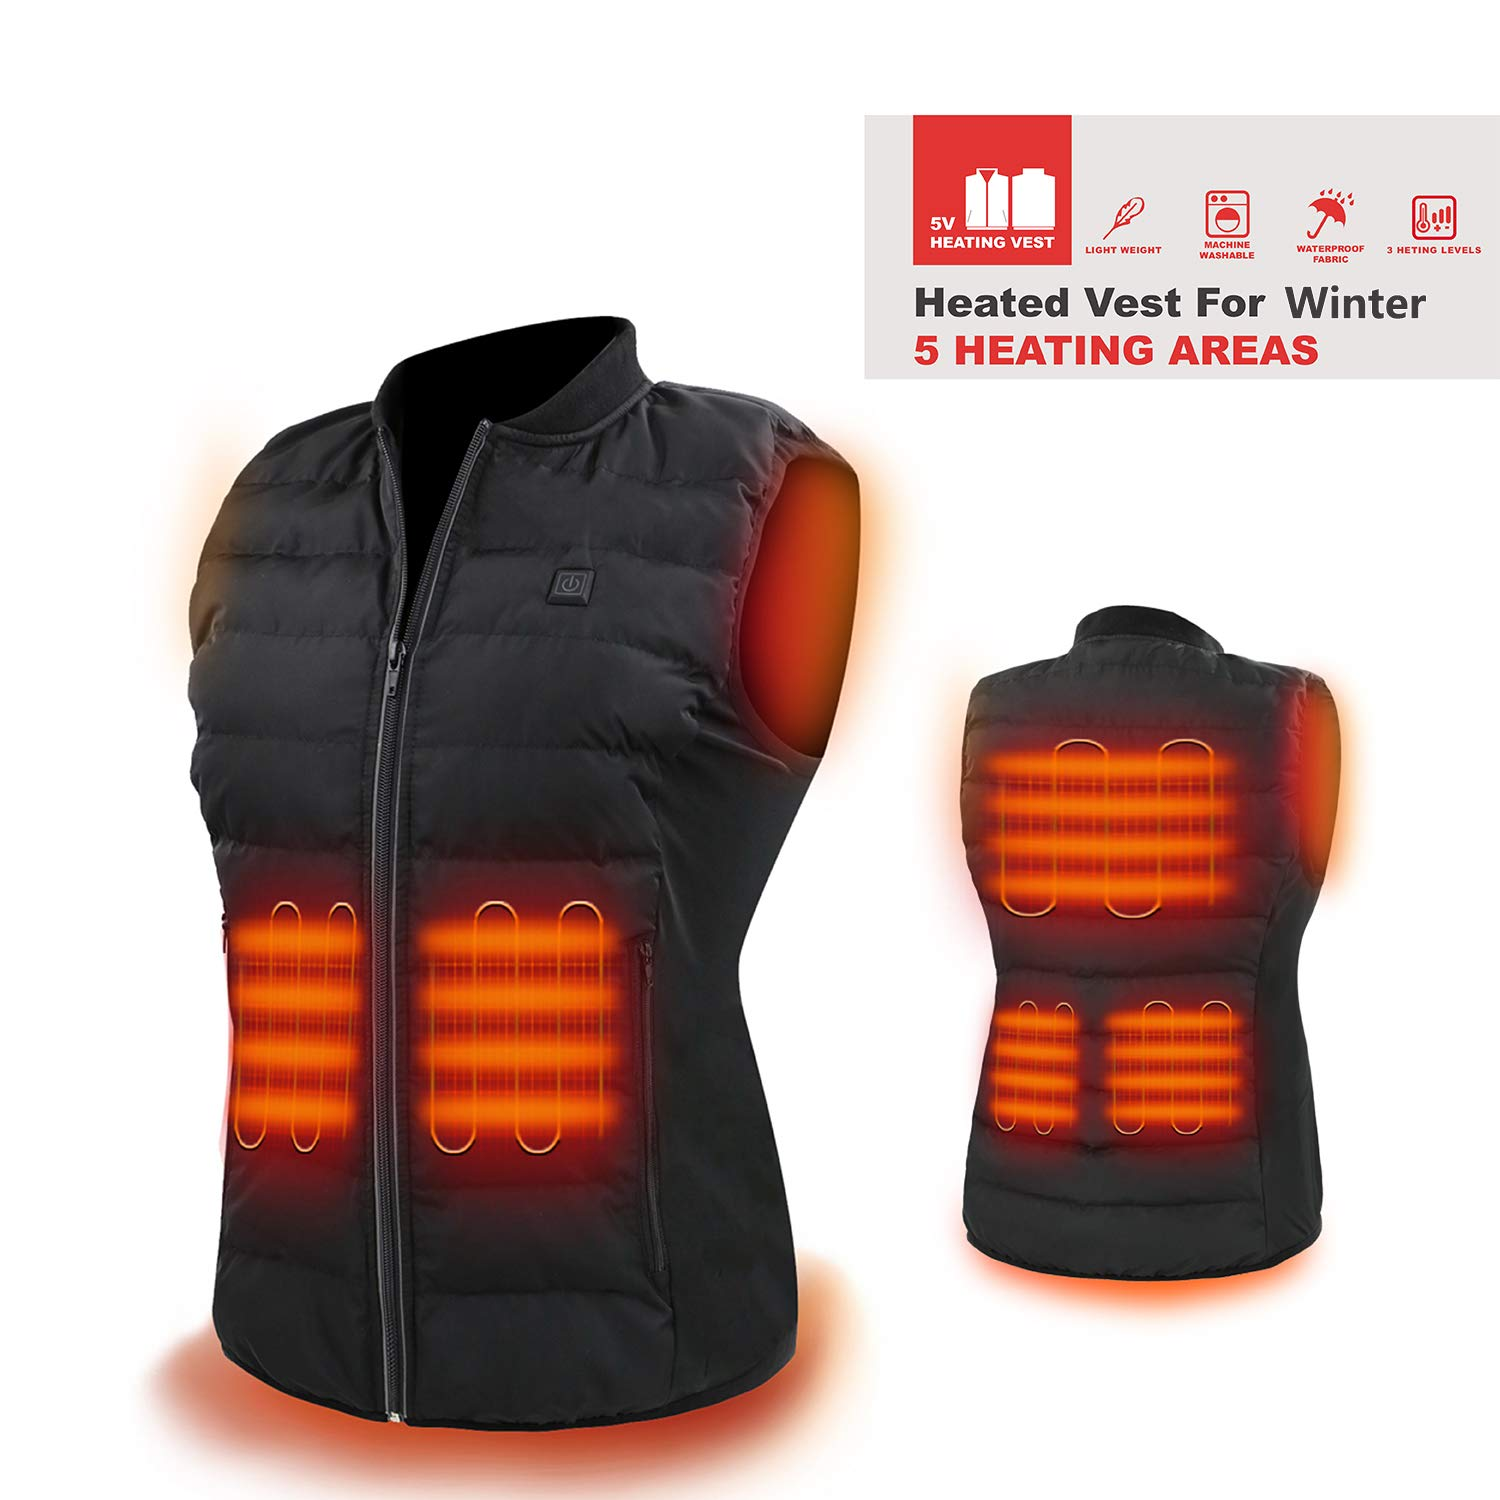 HOOCUCO Heated Vest, Washable Size Adjustable USB Charging,3 Temp Setting Heating Warm Vest for Outdoor Camping Hiking Golf Rechargeable Heated Clothes Warm for Men Women (Battery not Include)(X-L) by HOOCUCO